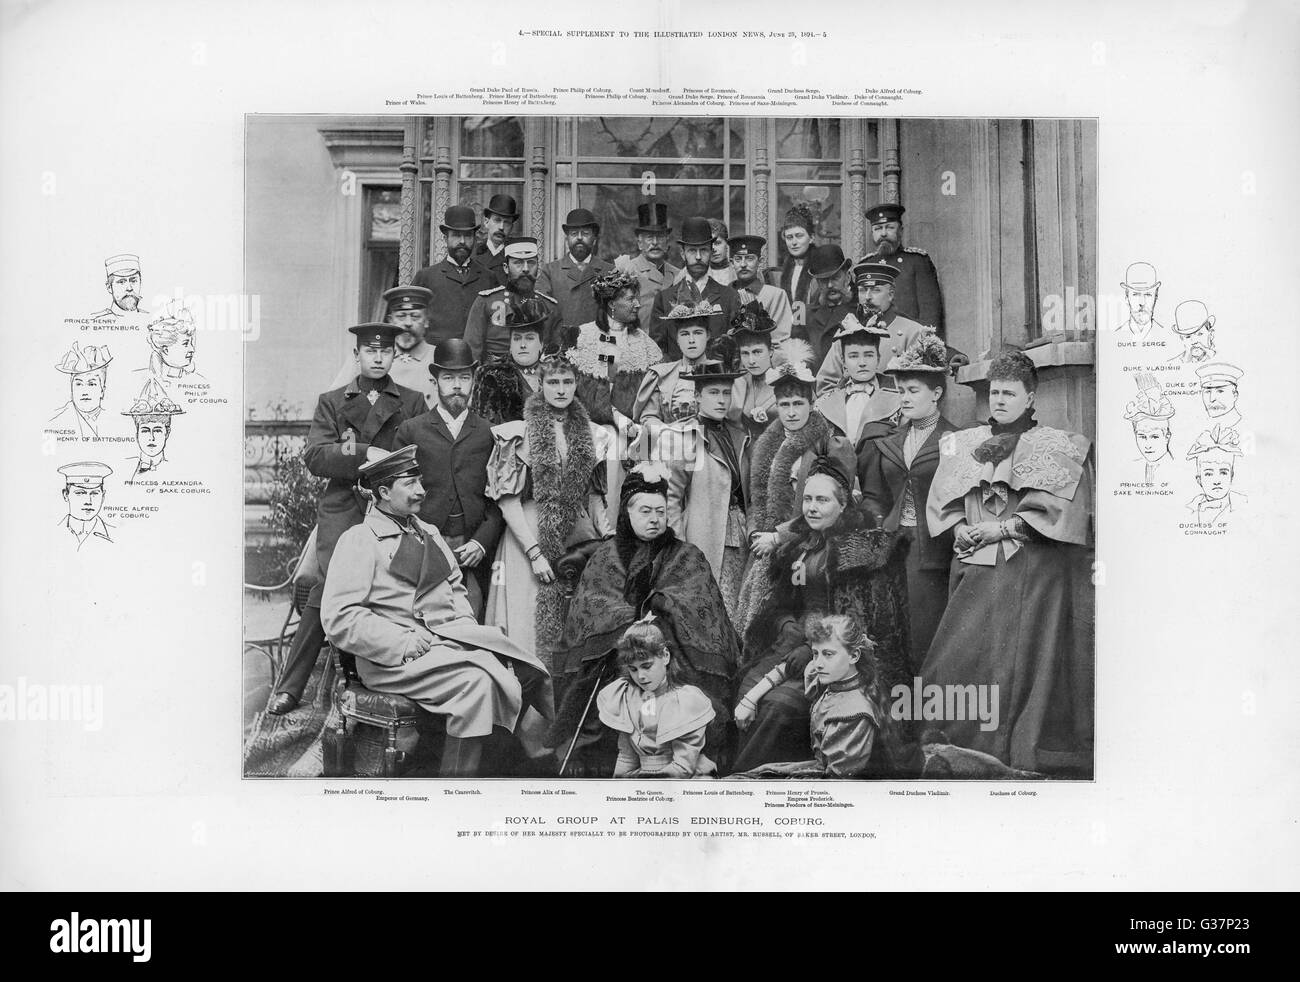 Queen Victoria (1819 - 1901) with European Royalty at  Coburg in 1894.       Date: 1894 - Stock Image